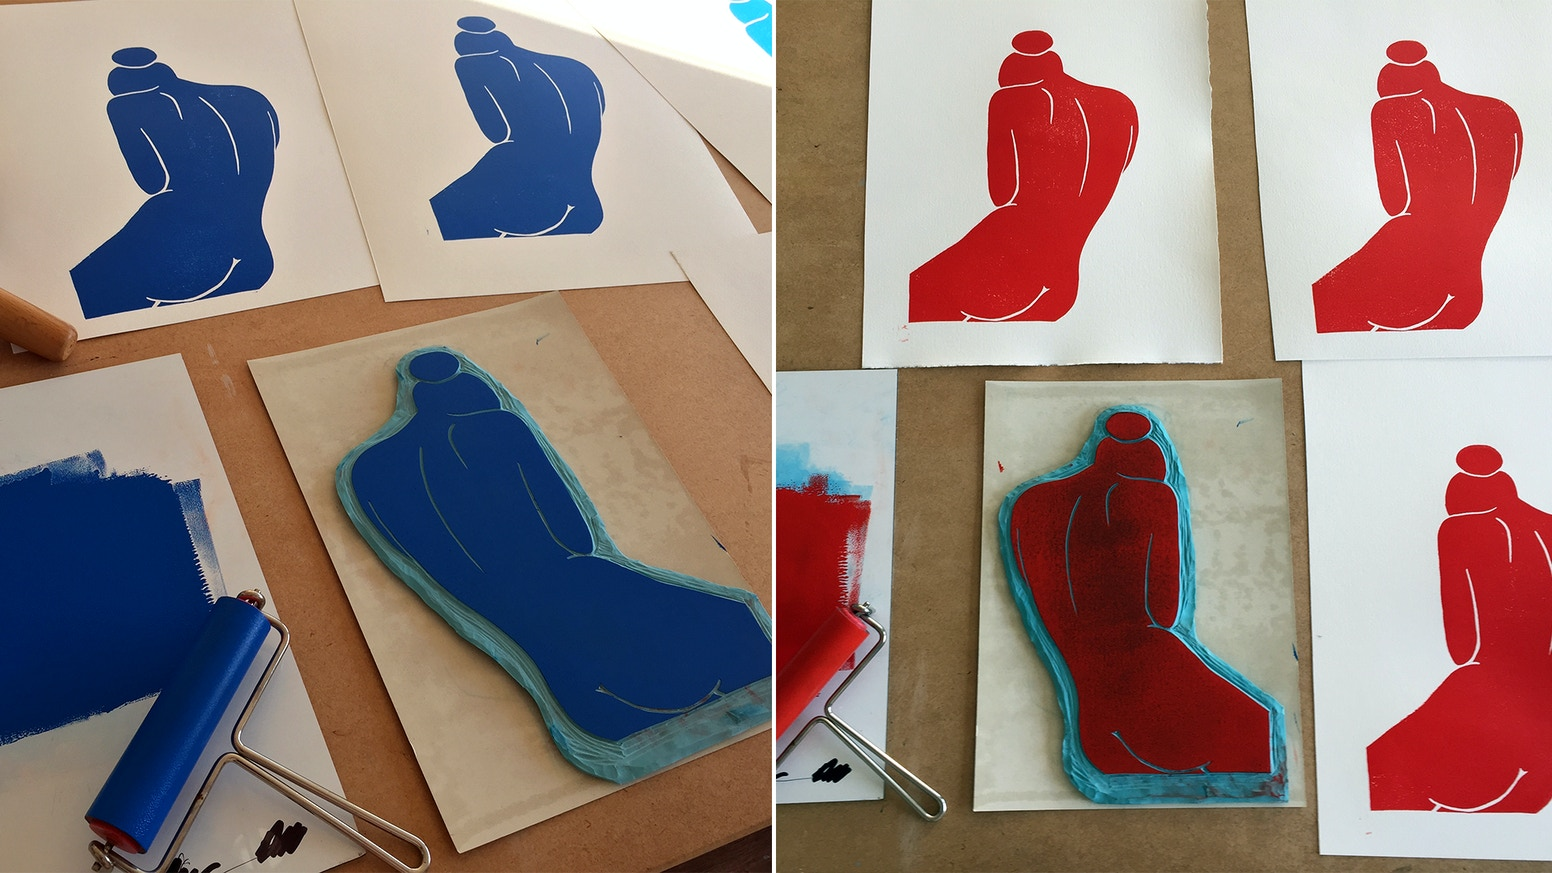 """Handprinted Linoleum Artworks """"Akt"""" // Nude Art in BLUE & RED, Printed on Butten Paper + Passepartout / 30x40cm / signed&numbered"""